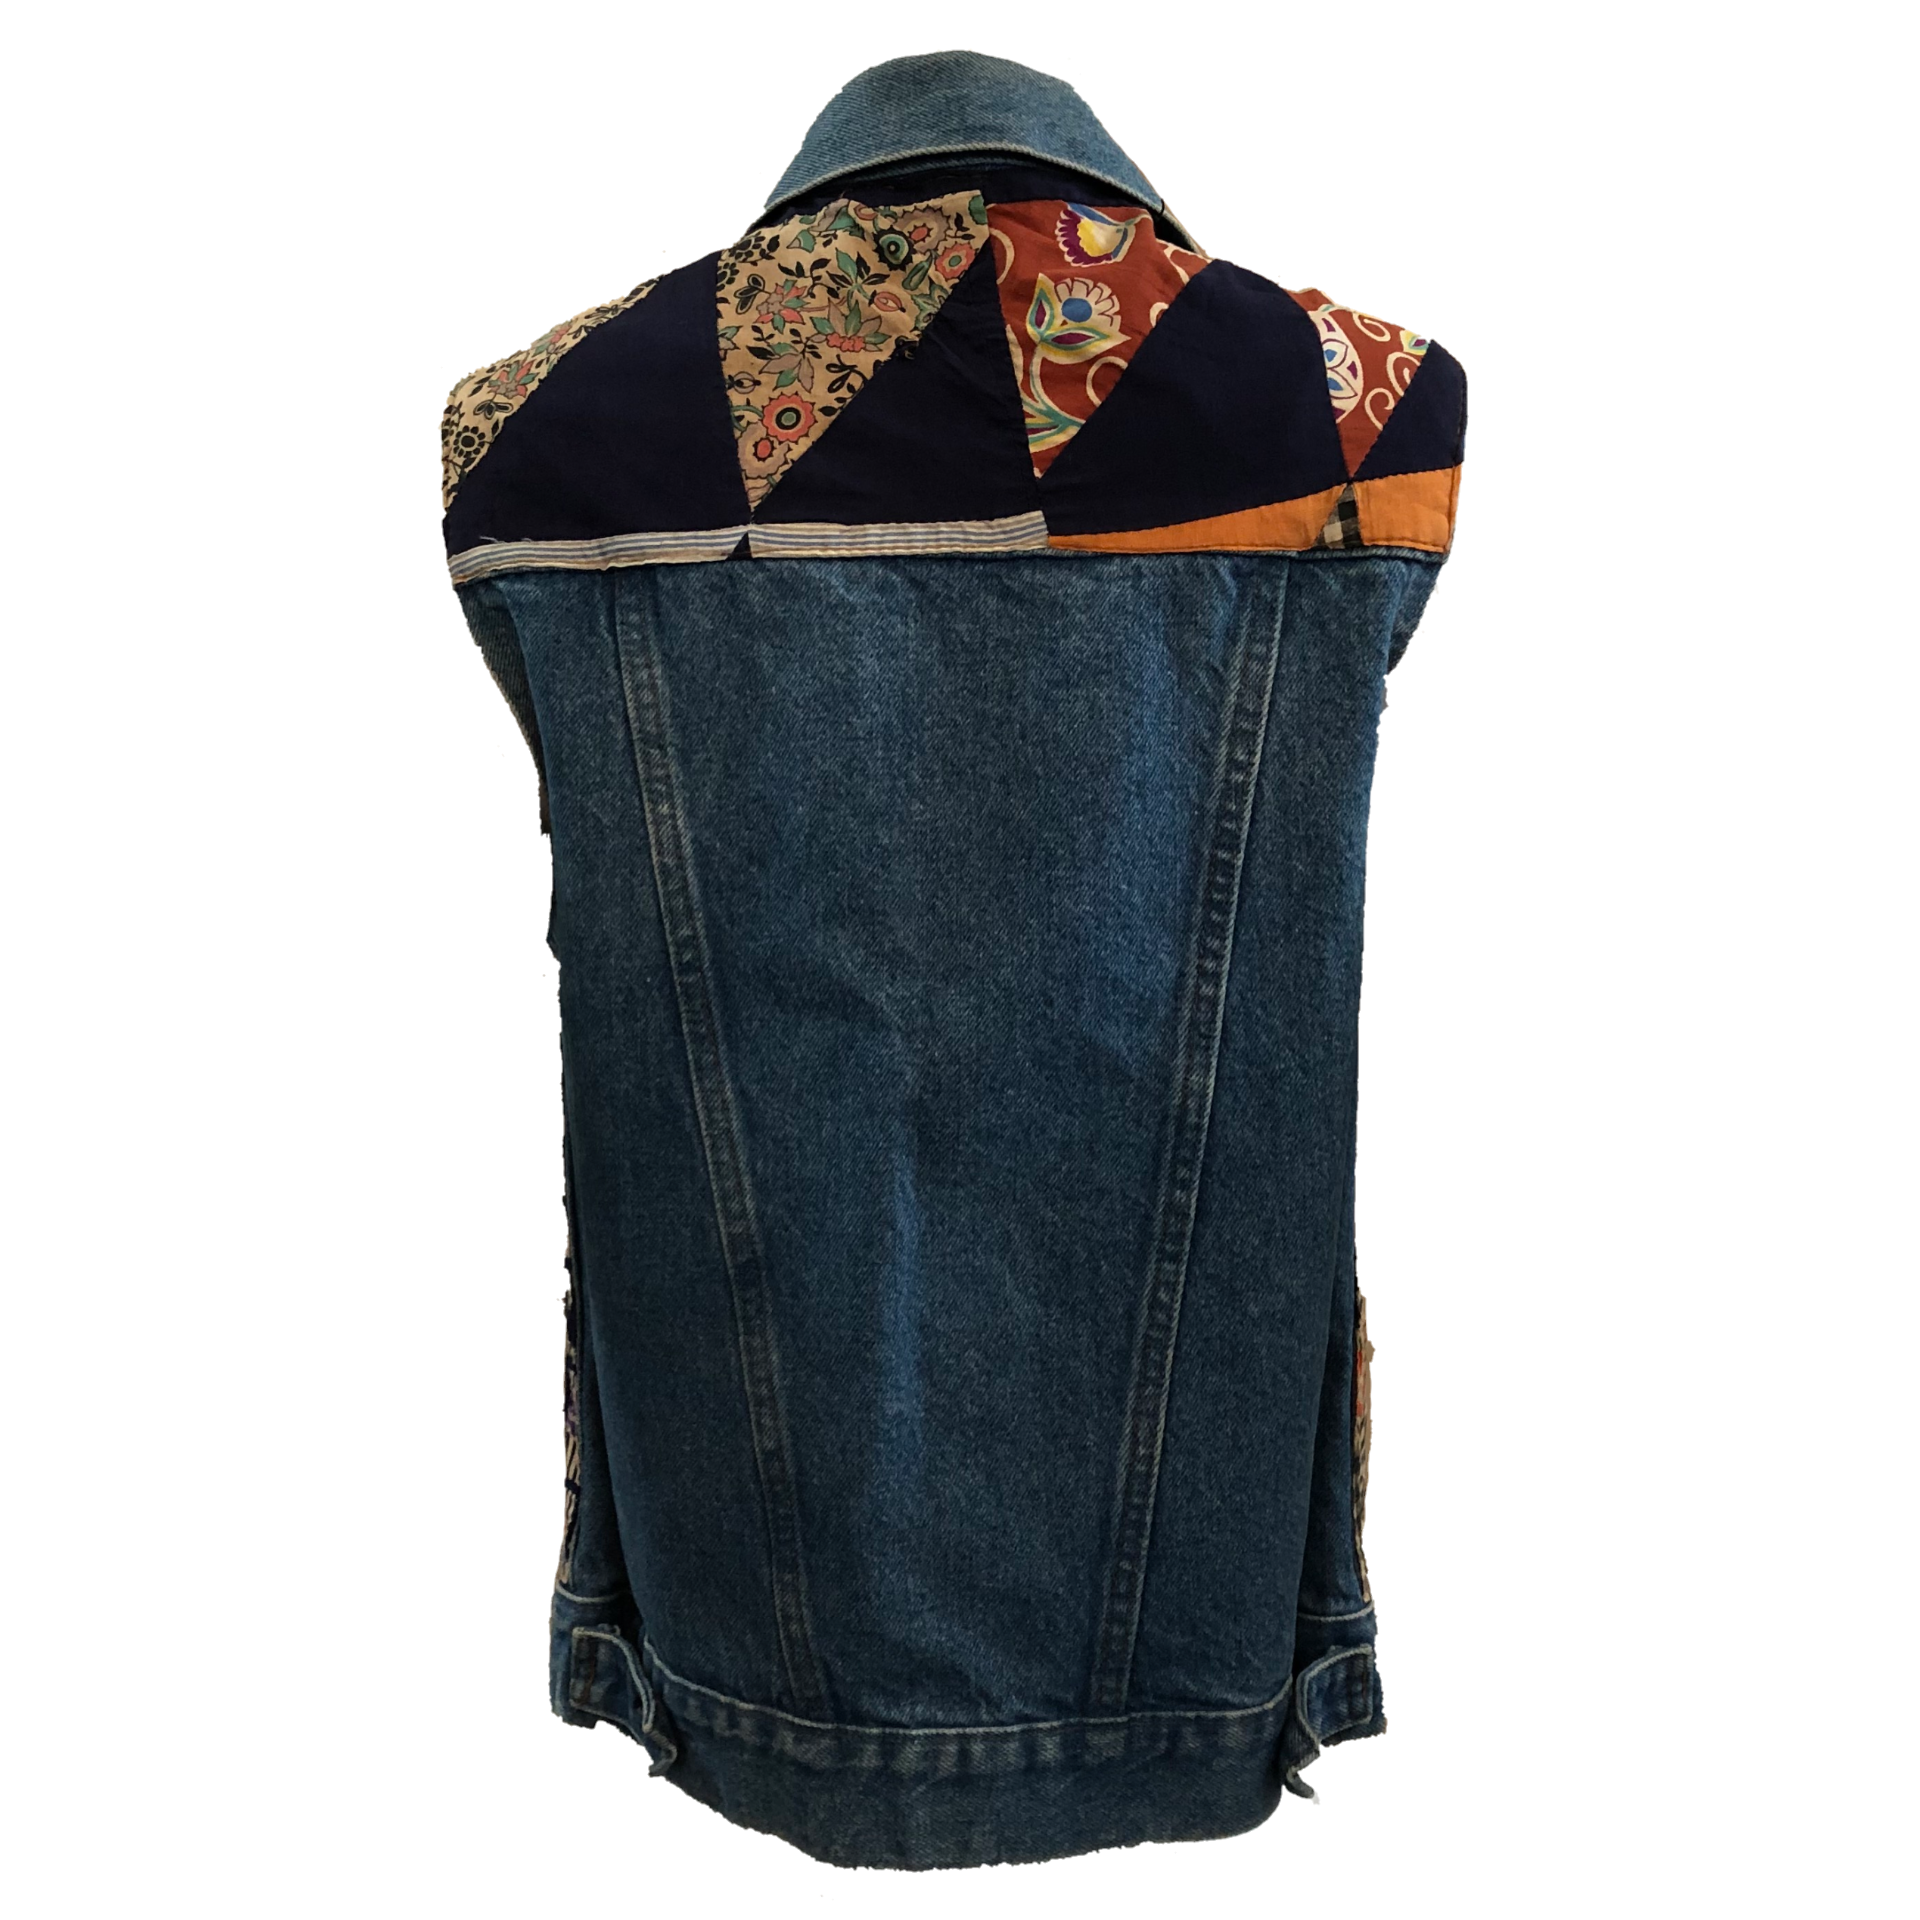 Levis Denim Patchwork Vest BACK 2 of 5